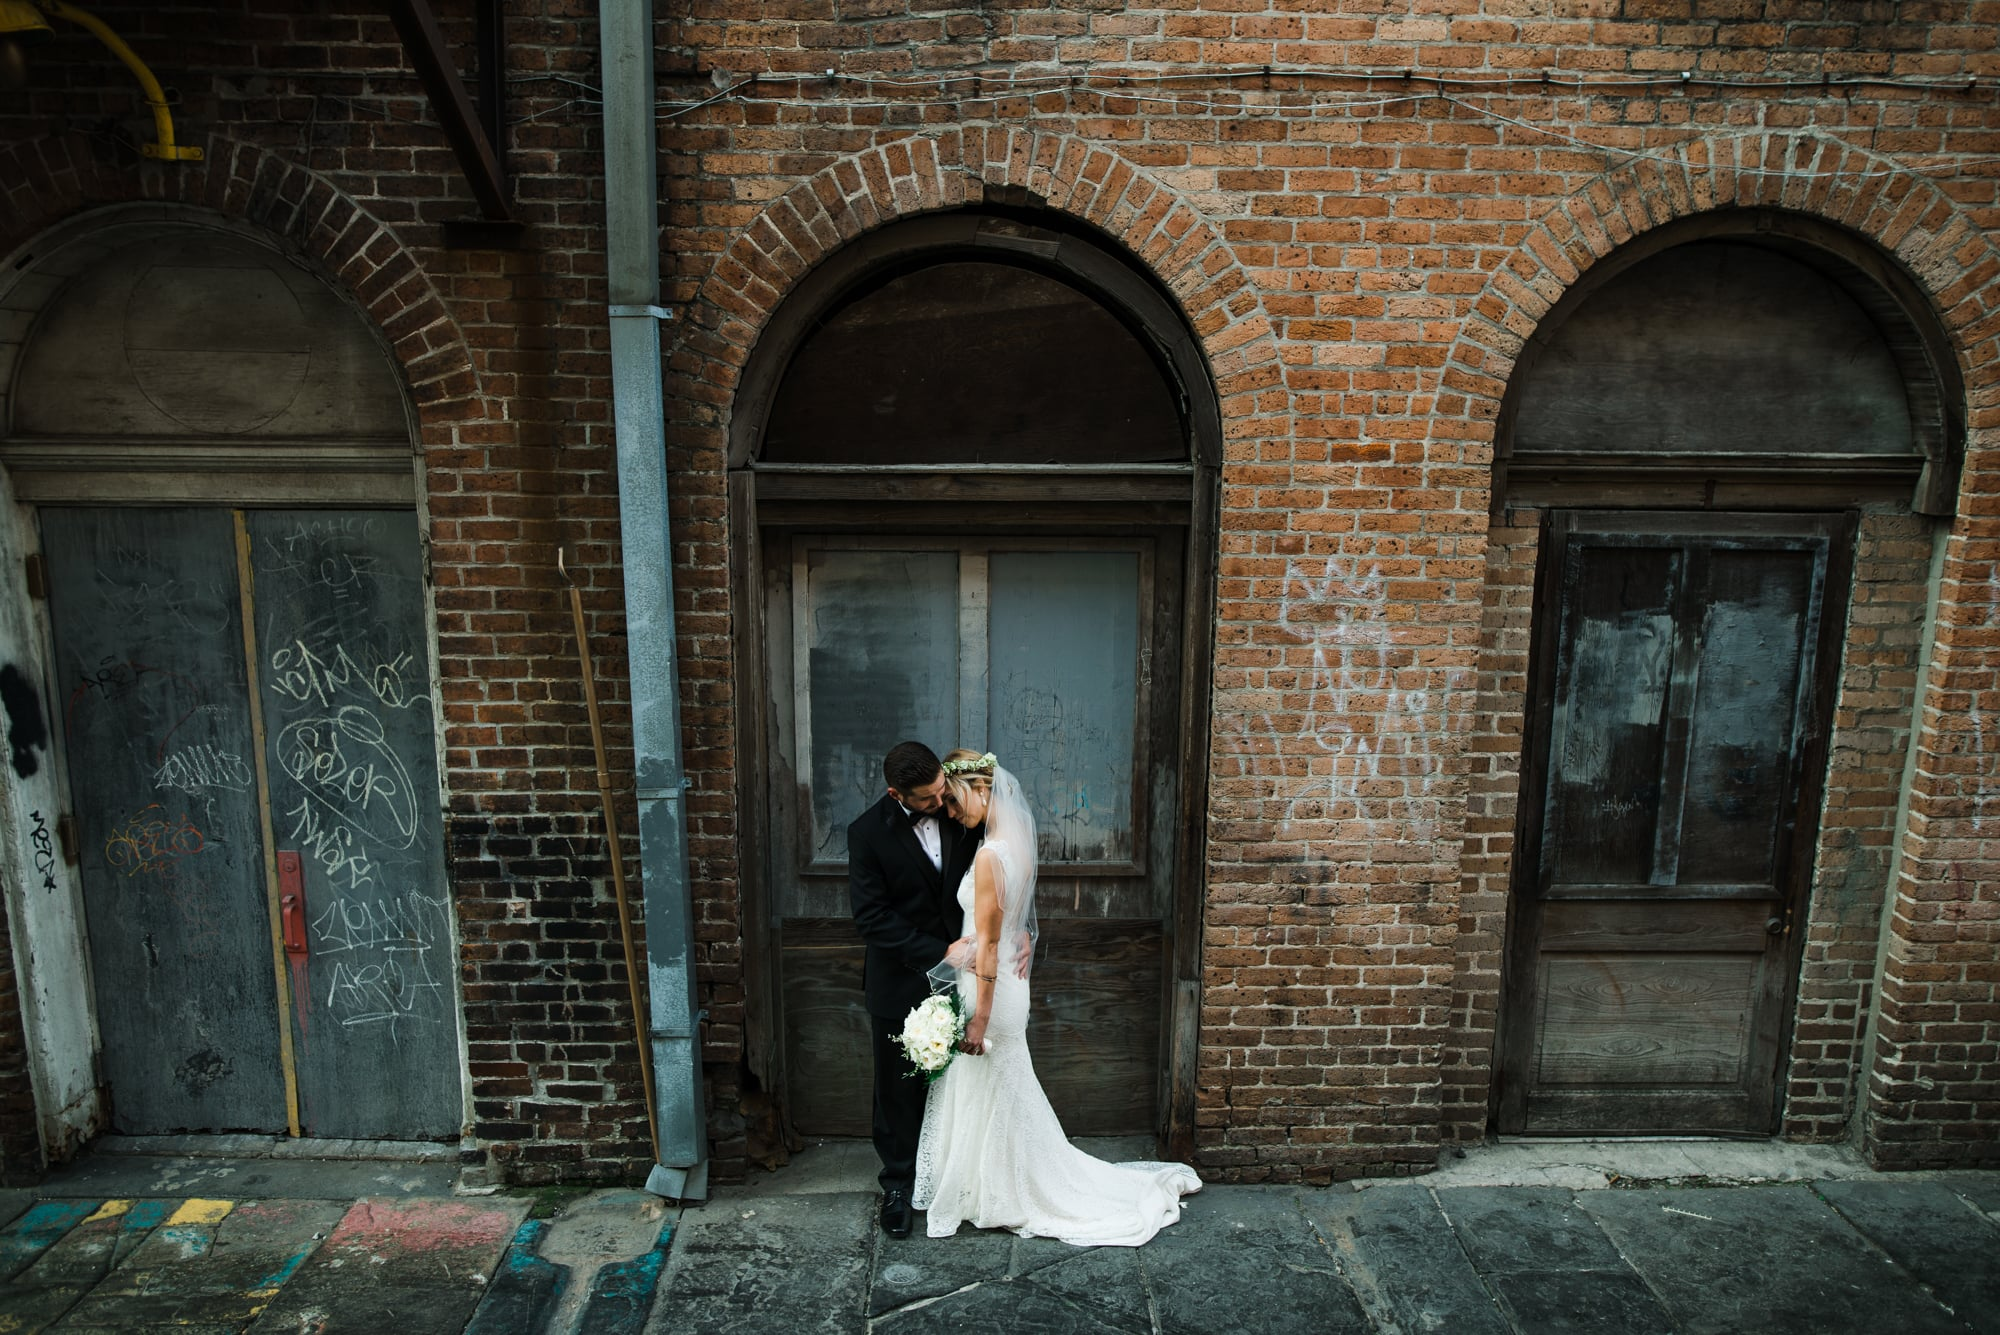 ©Isaiah & Taylor Photography - The Elms Mansion Wedding - New Orleans, Louisiana-39.jpg